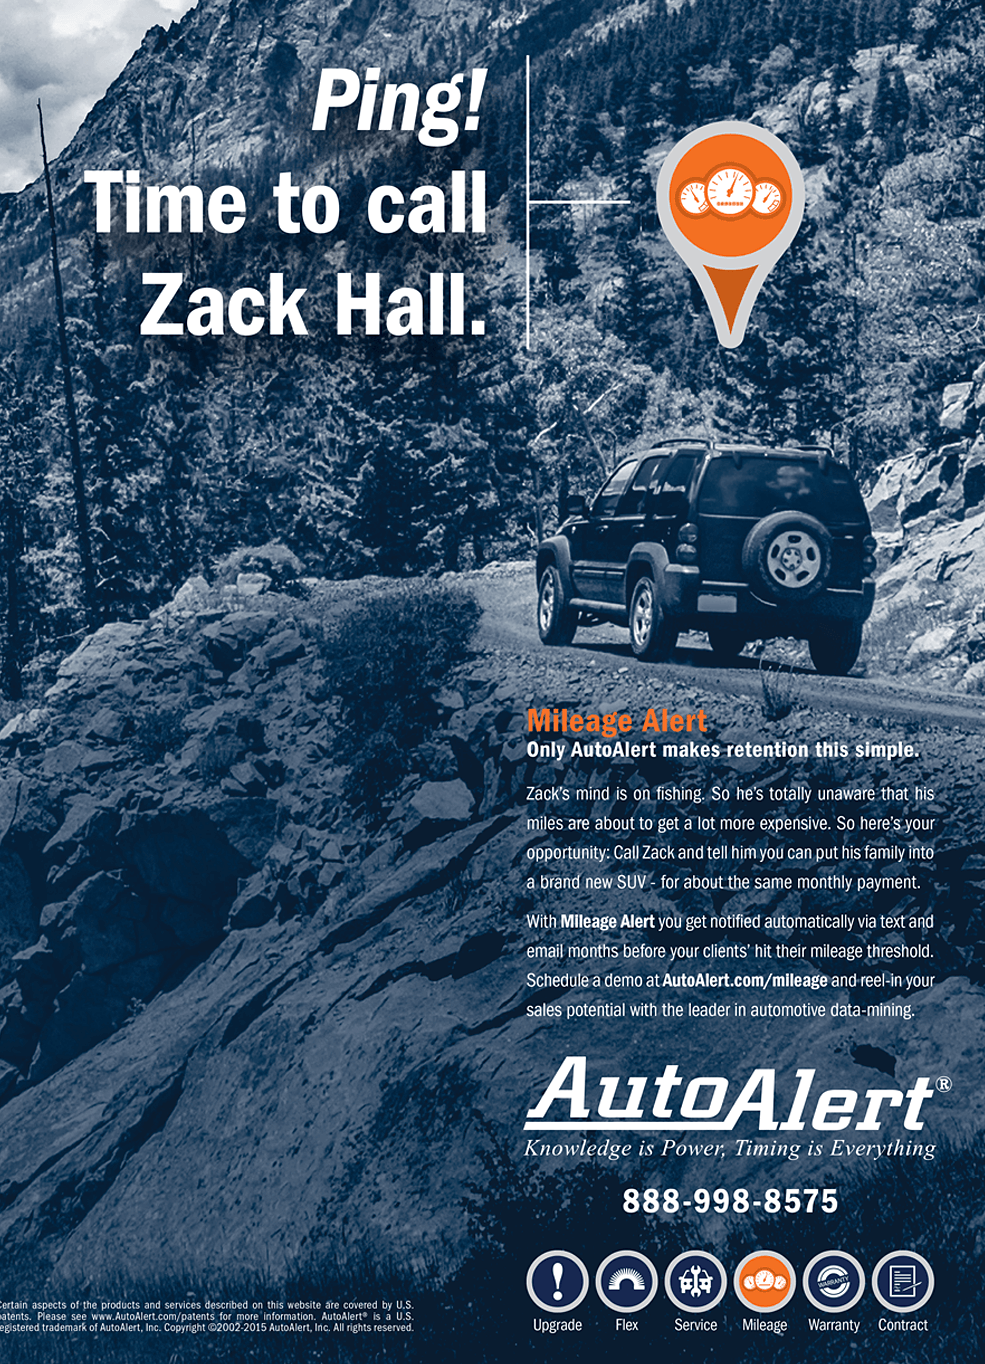 Auto Alert Ad - Time to Call Zack Hall